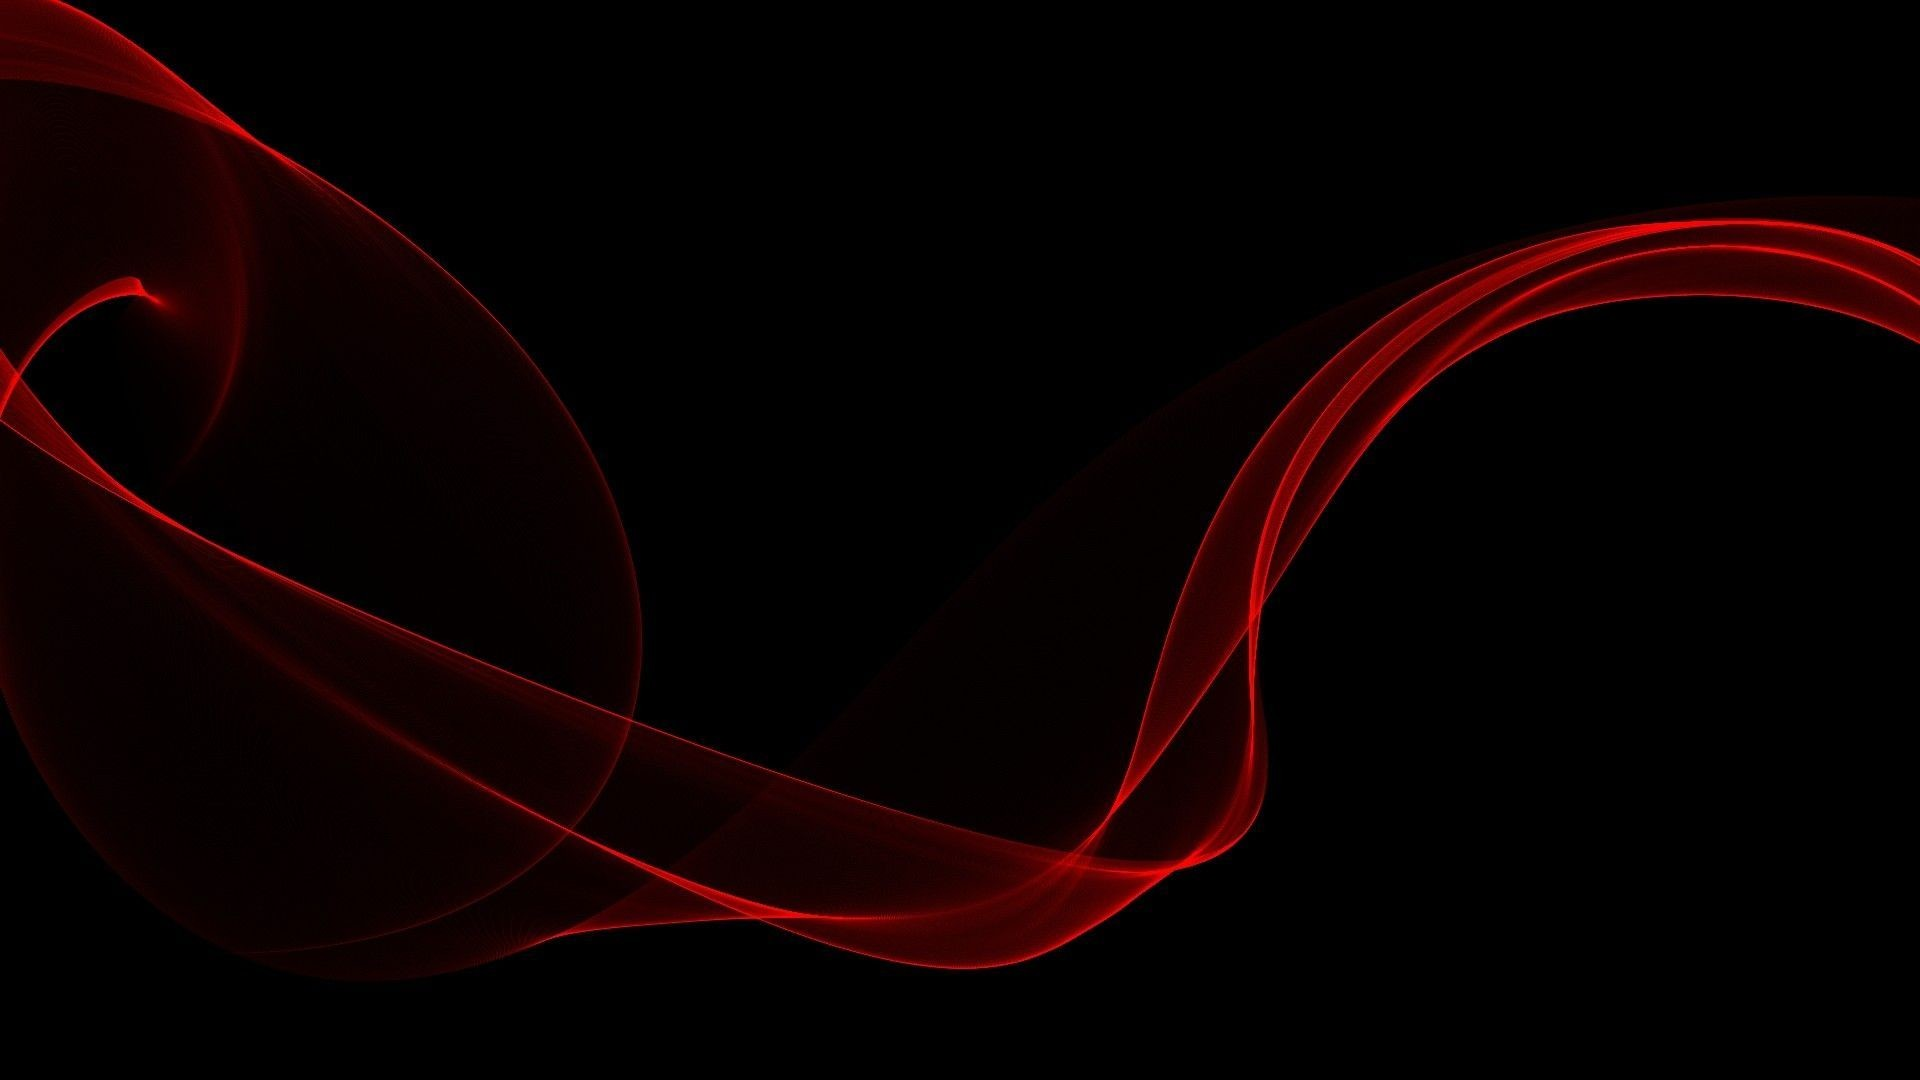 Black And Red Wallpaper Hd Wallpapertag